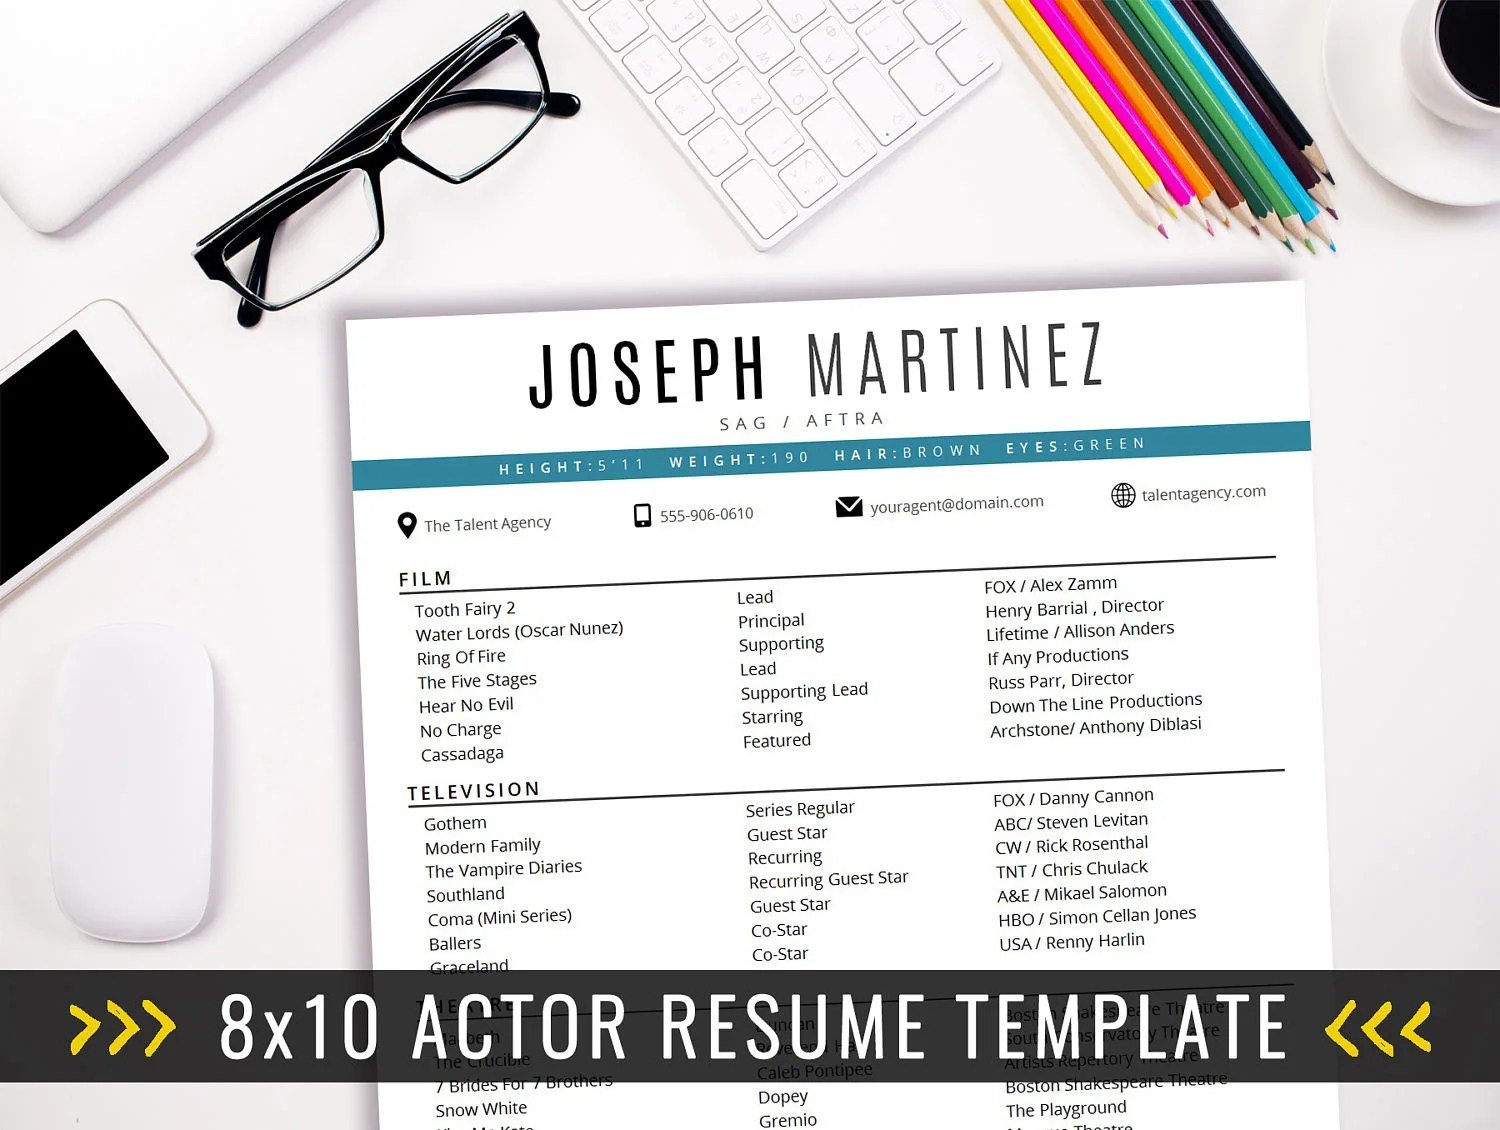 Actor Resume Template / 8 x 10 Acting Resume / Instant Digital Etsy